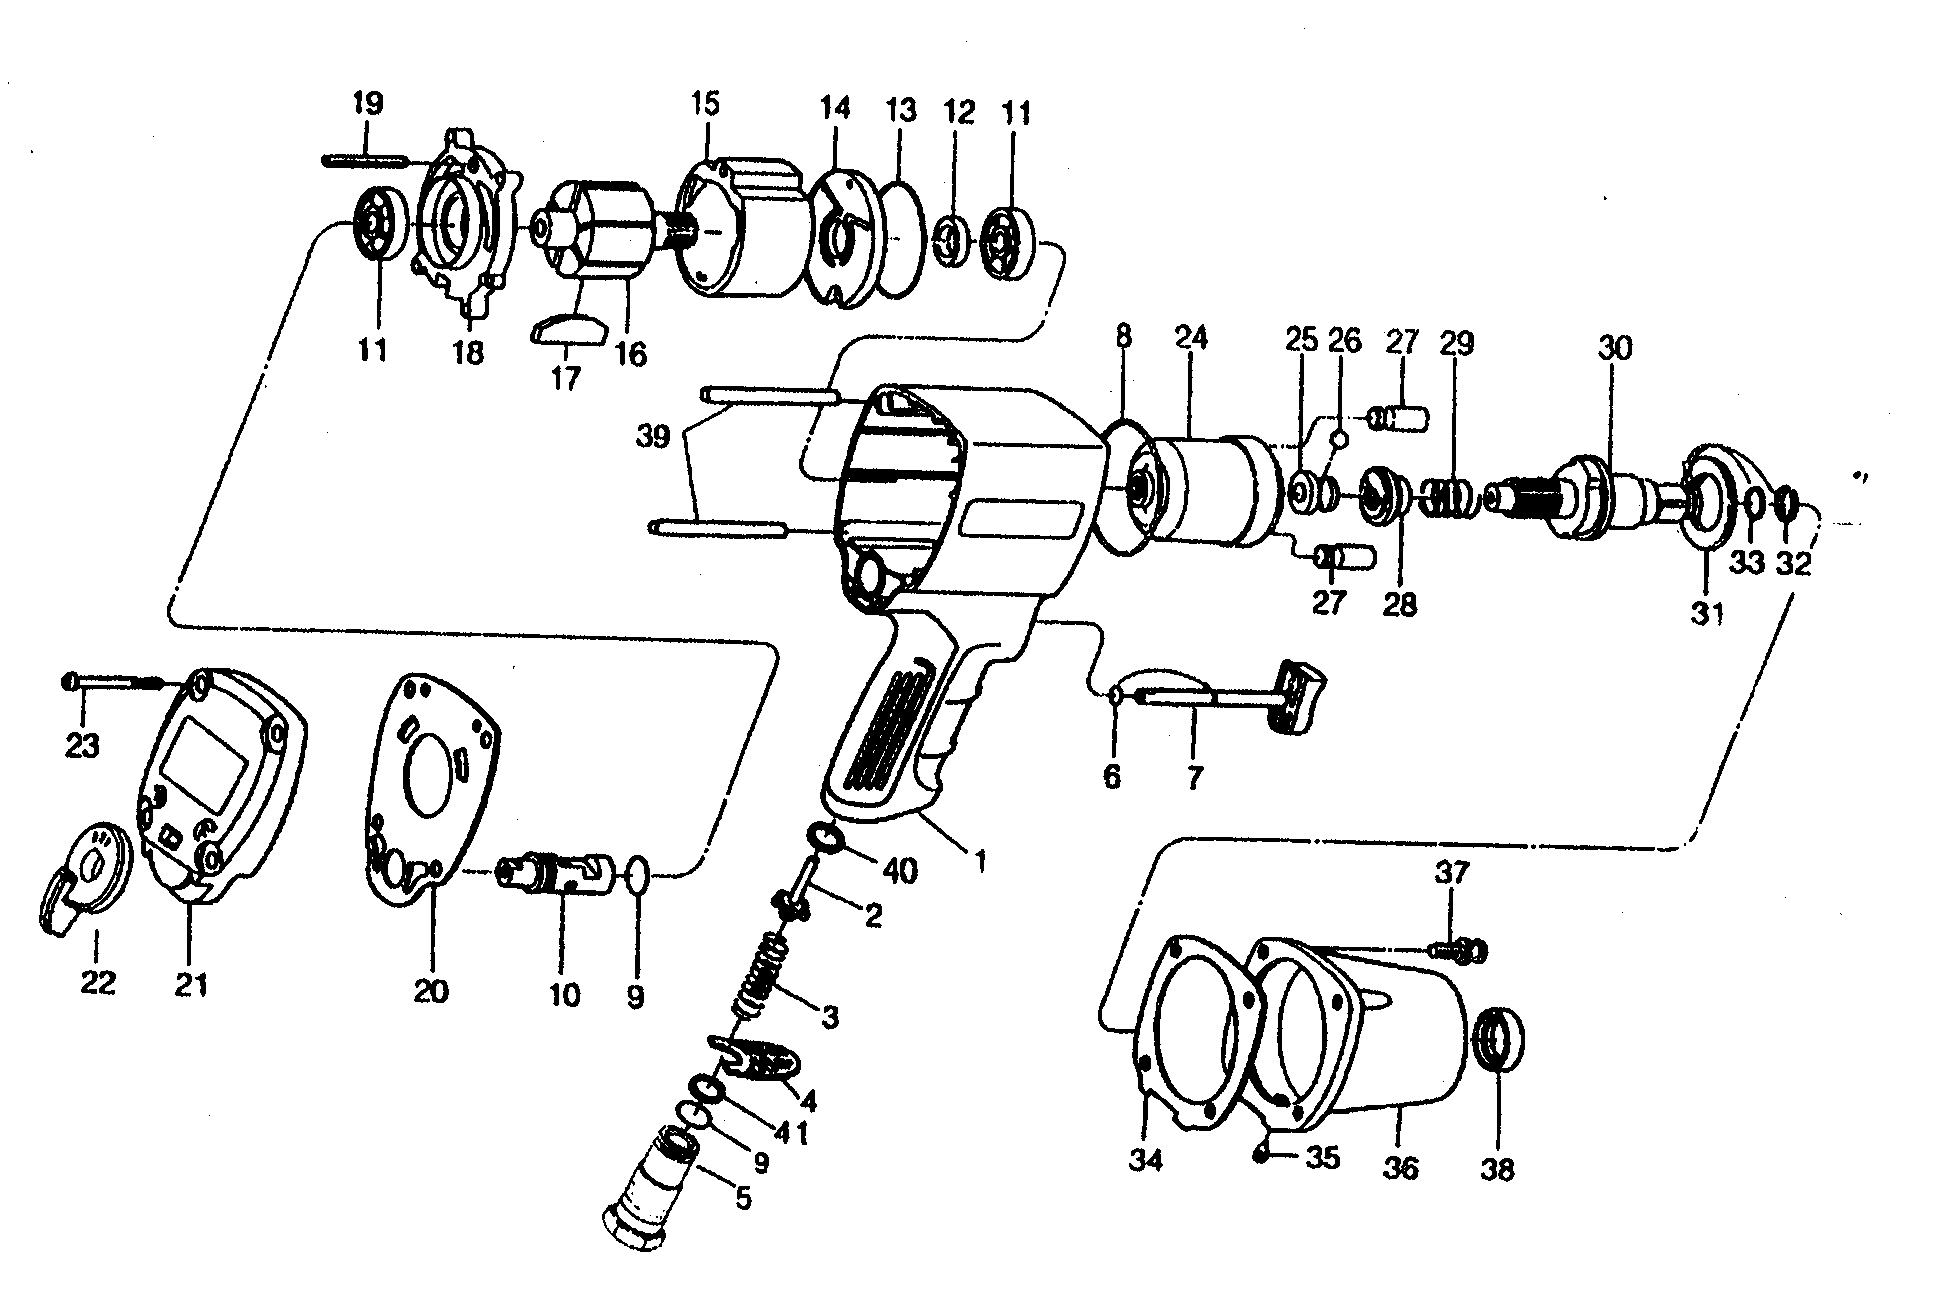 Matco Mt Impact Wrench Parts Diagram